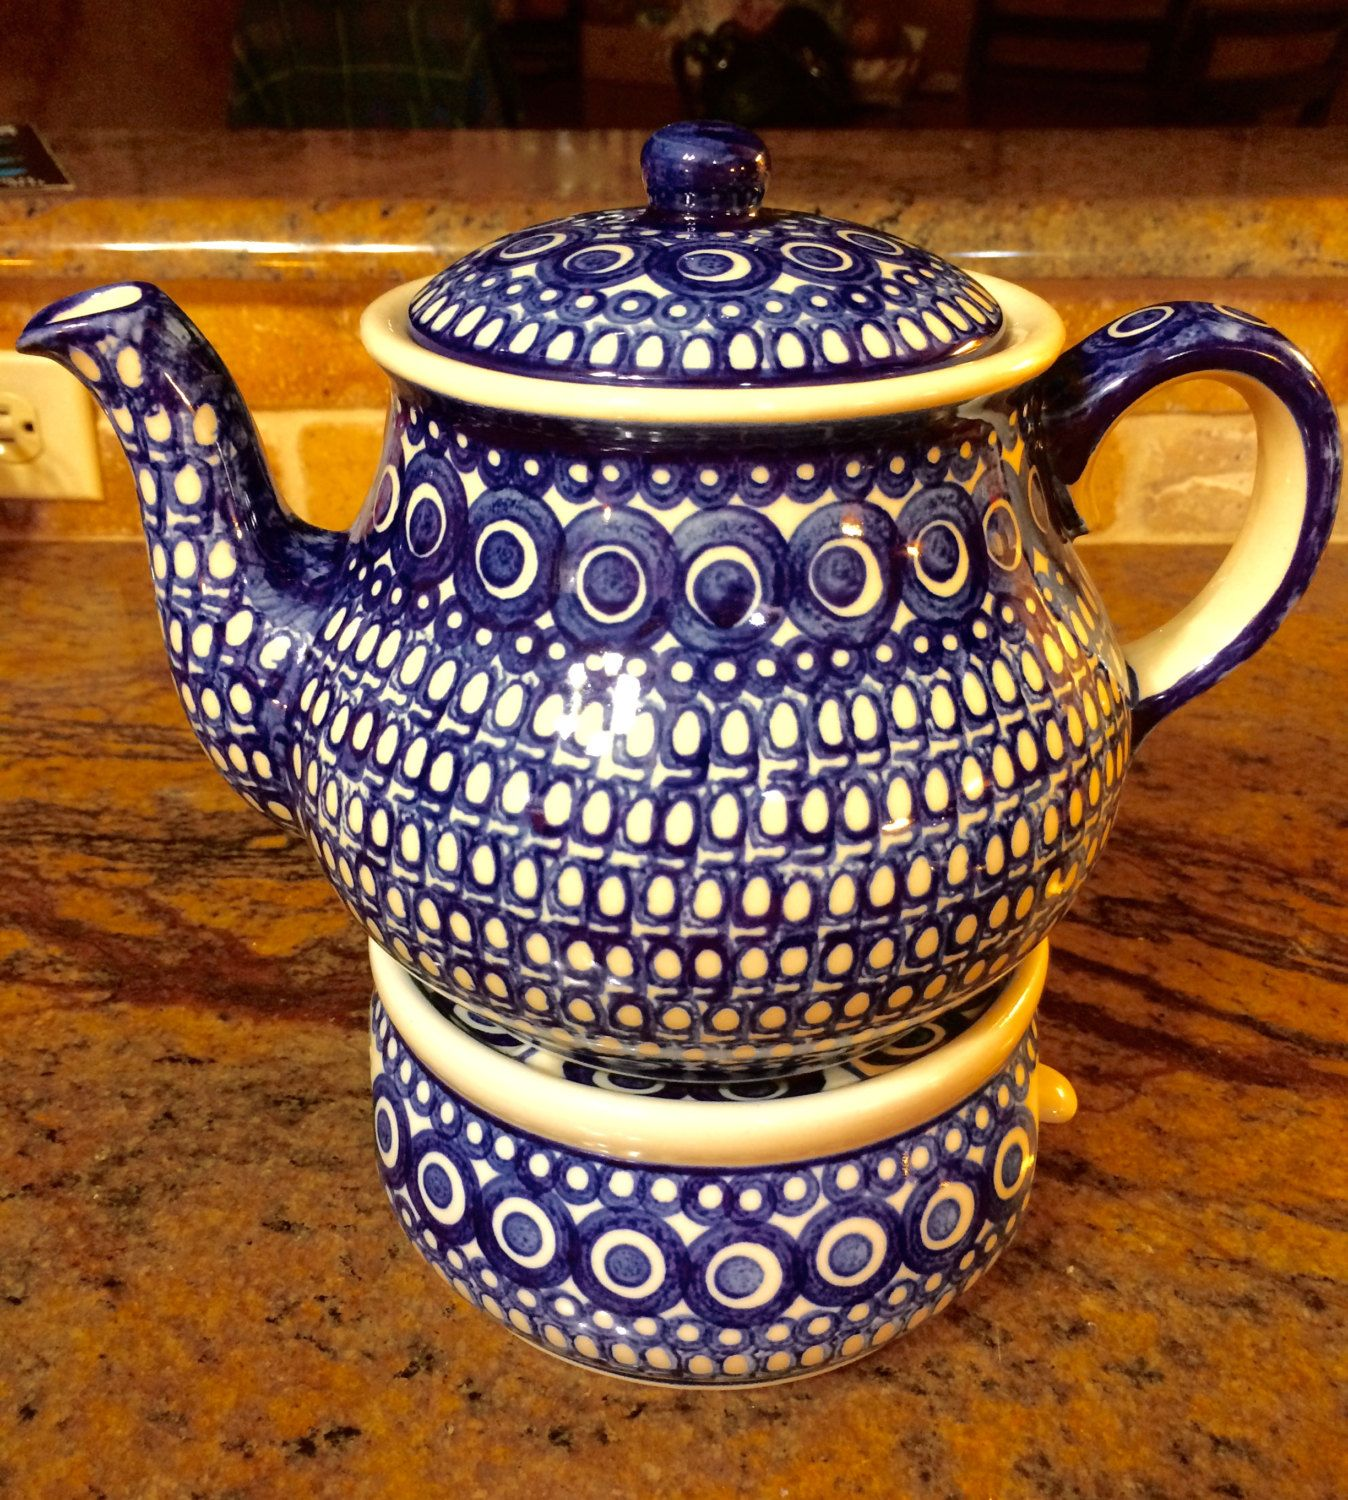 Vintage Handmade Polish Pottery Large Teapot With Matching Warmer By Cottontopvintage On Etsy Tea Pots Handmade Polish Polish Pottery